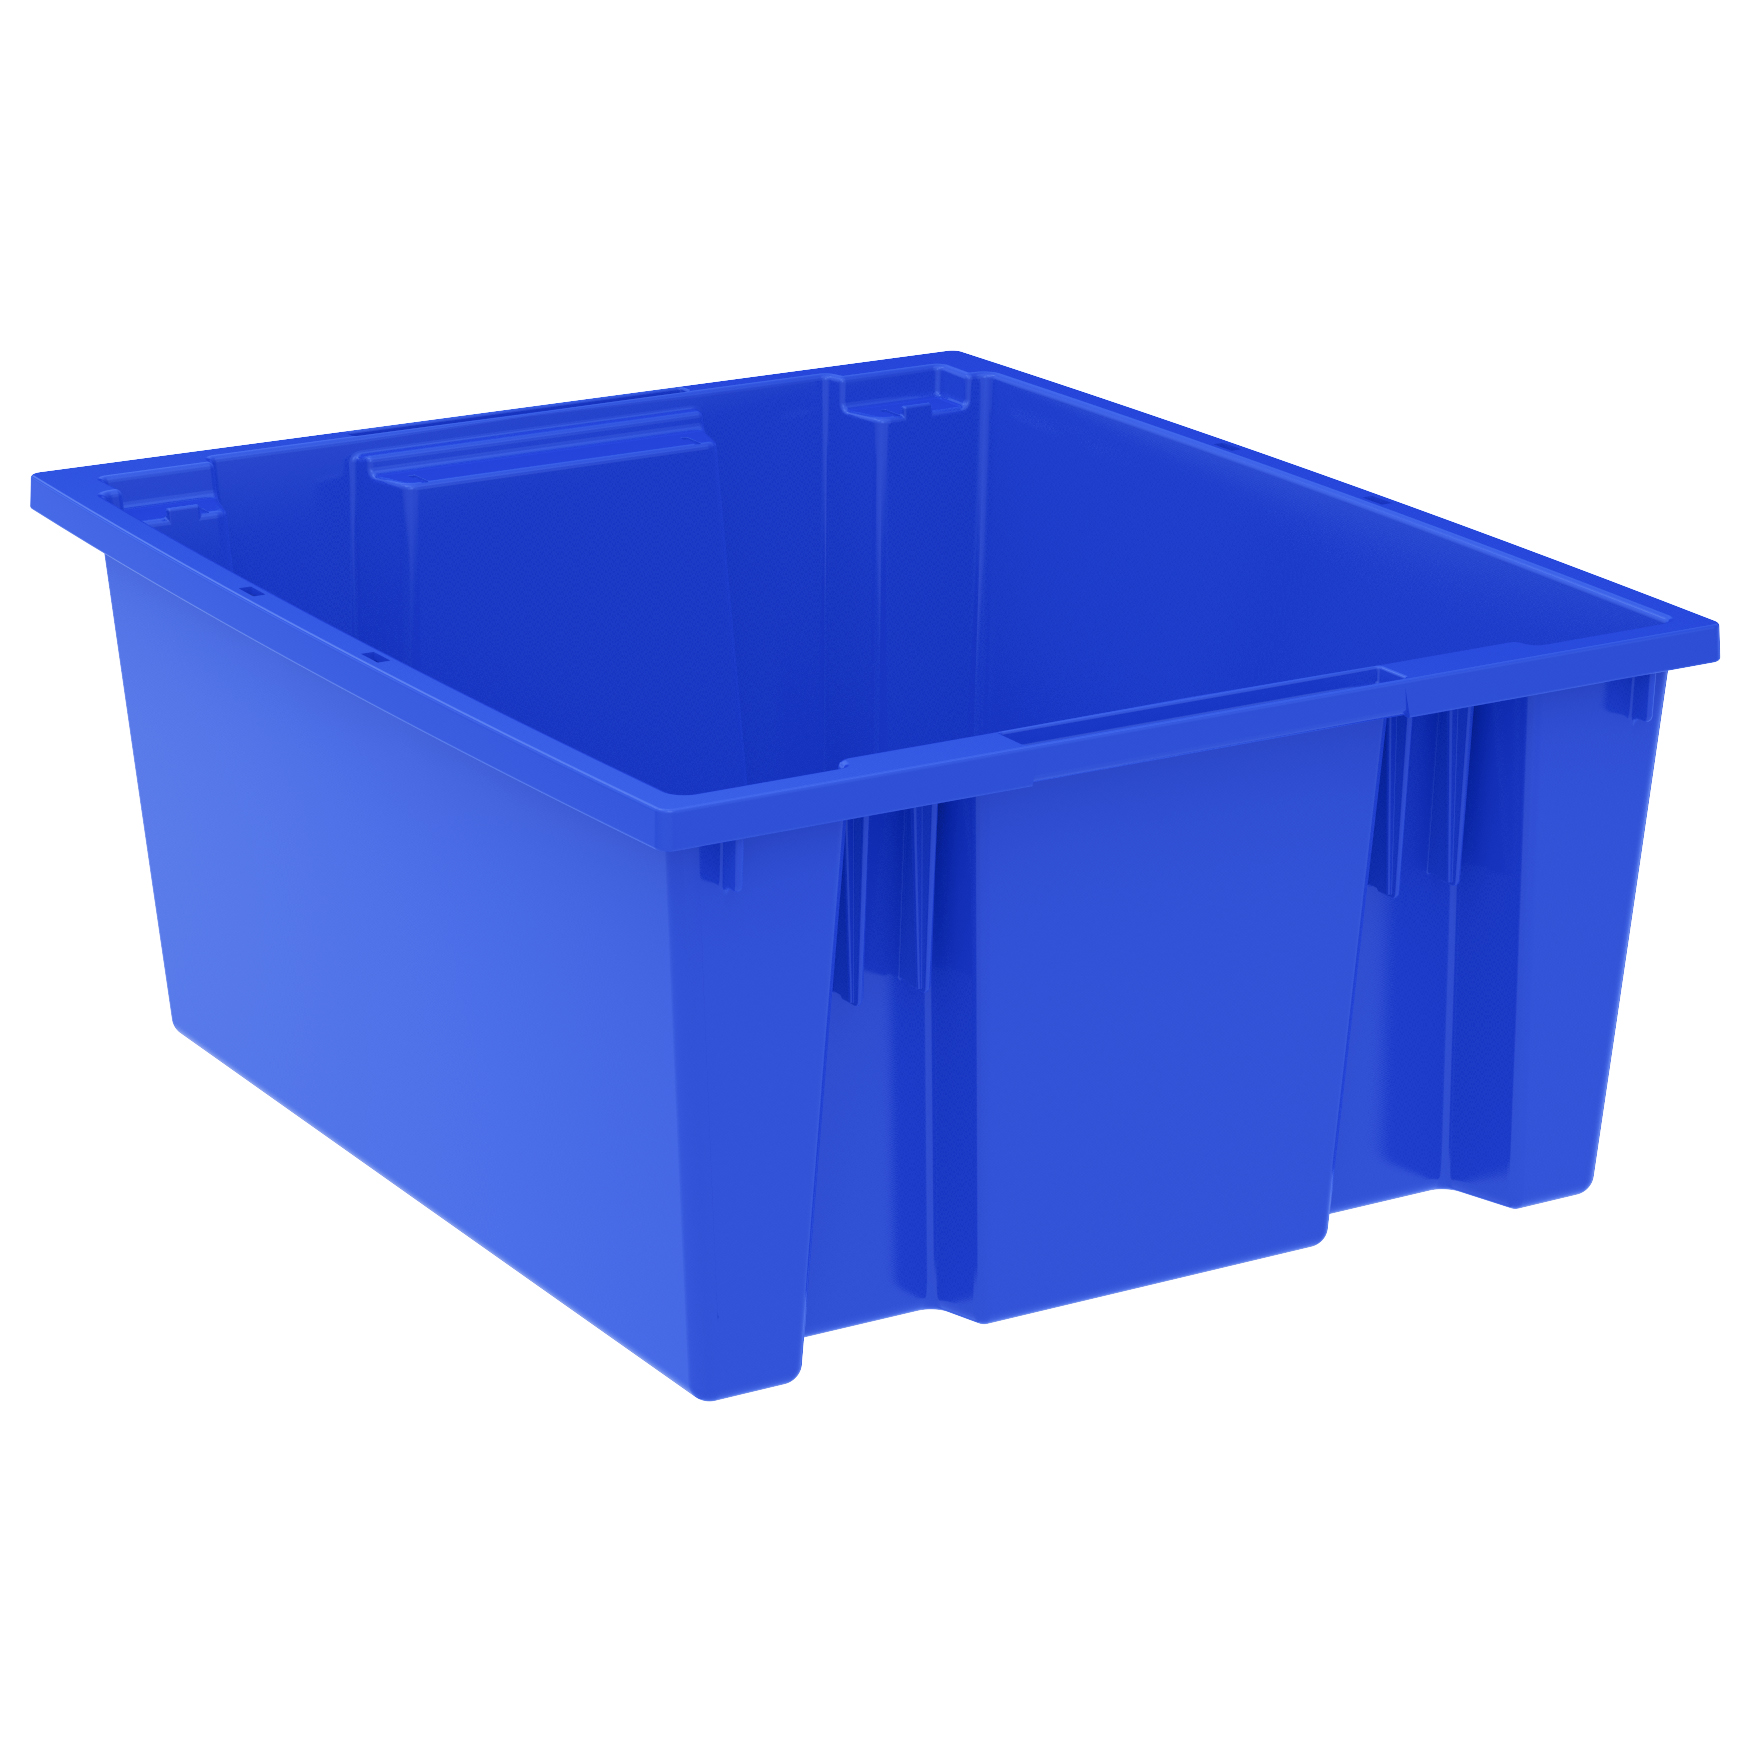 Nest & Stack Tote 23-1/2 x 19-1/2 x 10, Blue (35225BLUE).  This item sold in carton quantities of 3.